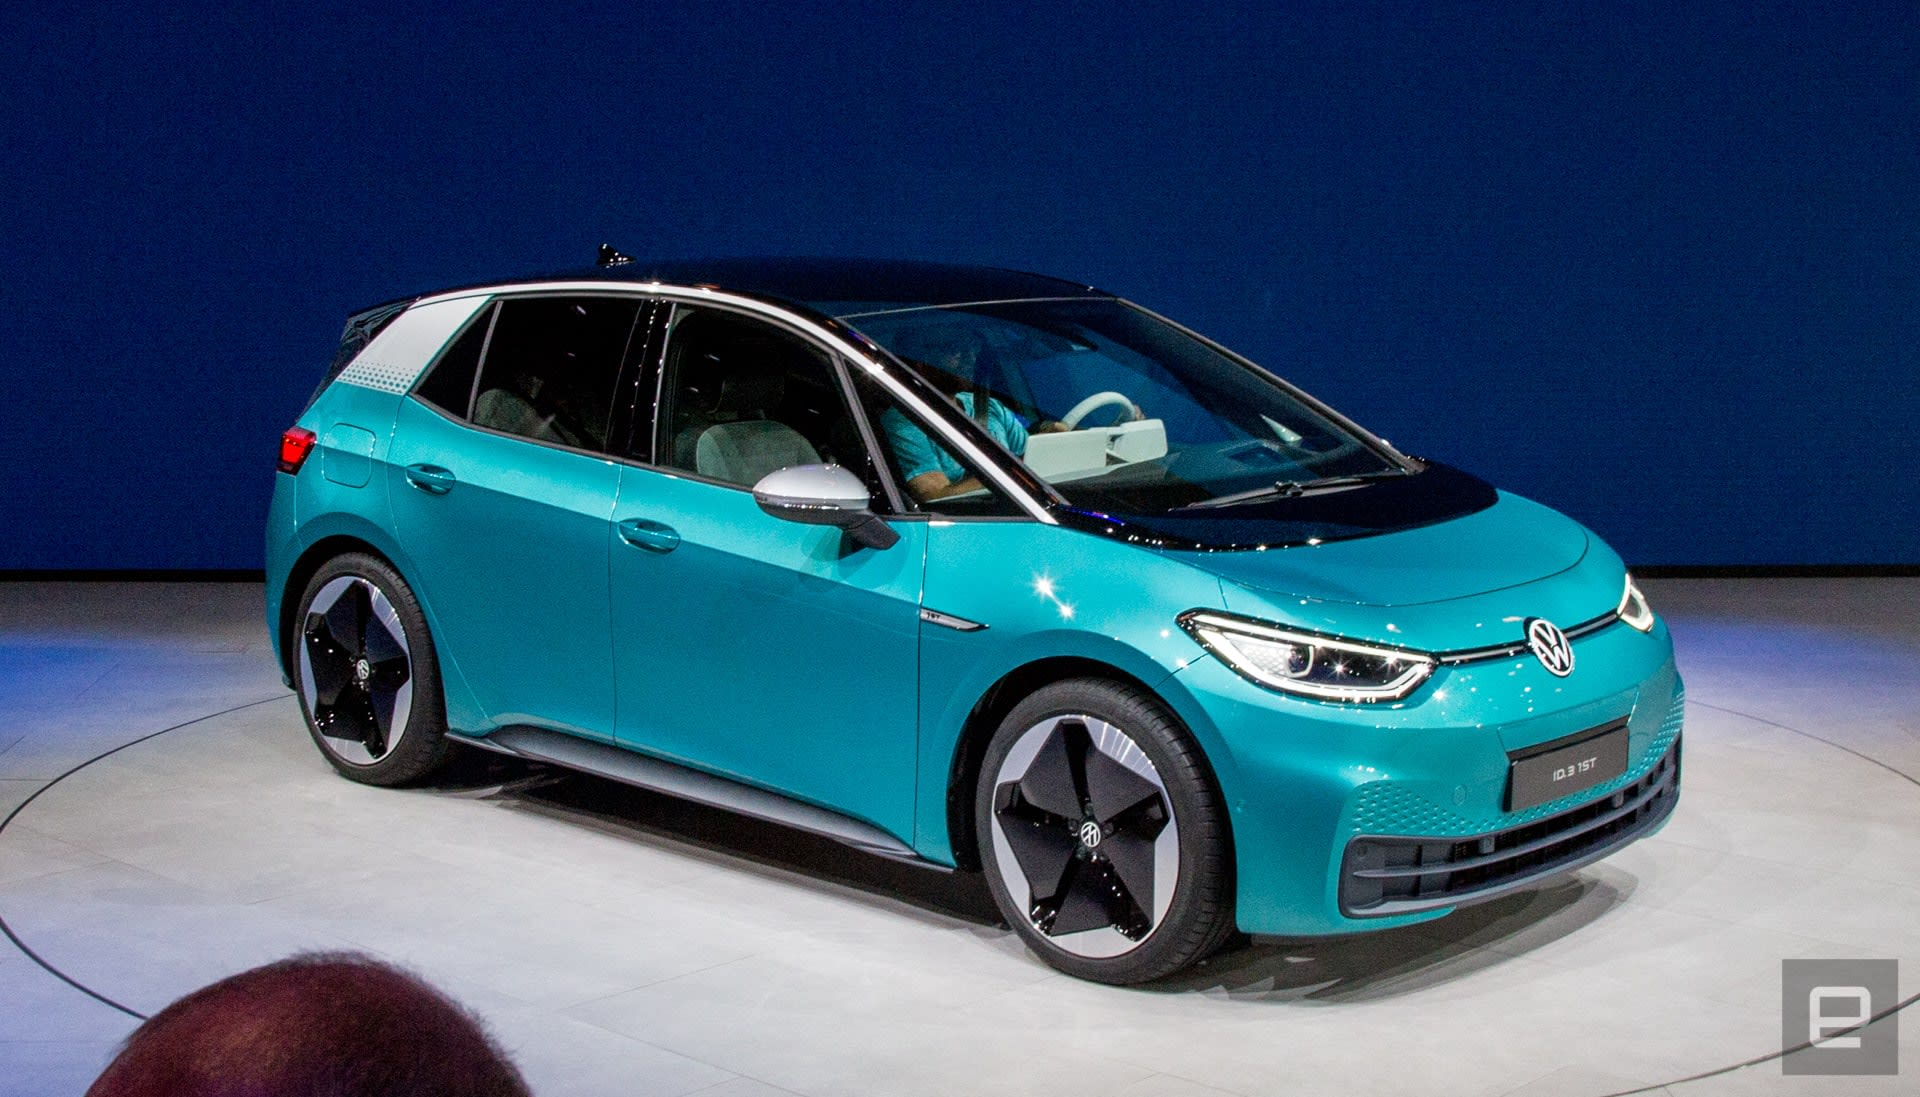 Volkswagen takes the wraps off the production-ready ID 3 EV